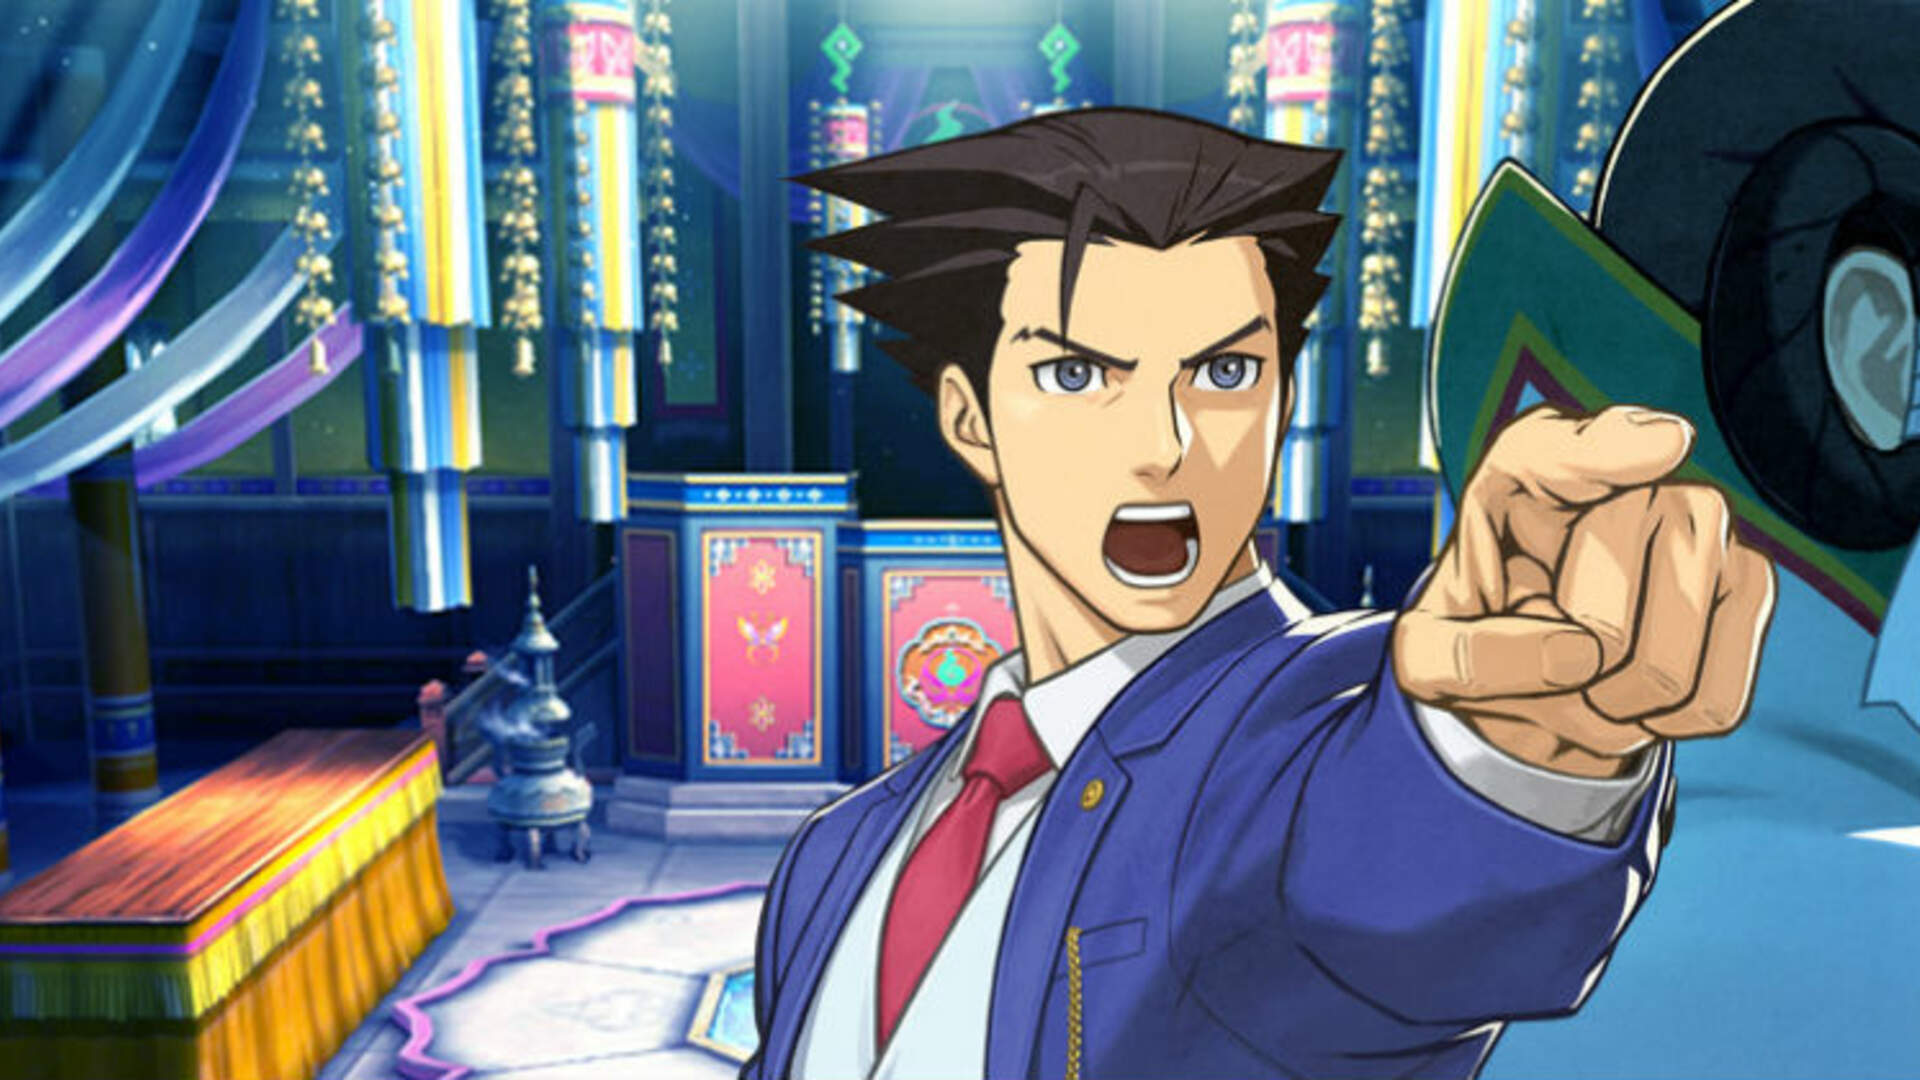 Maya Fey Returns in Ace Attorney 6, Fans Rejoice